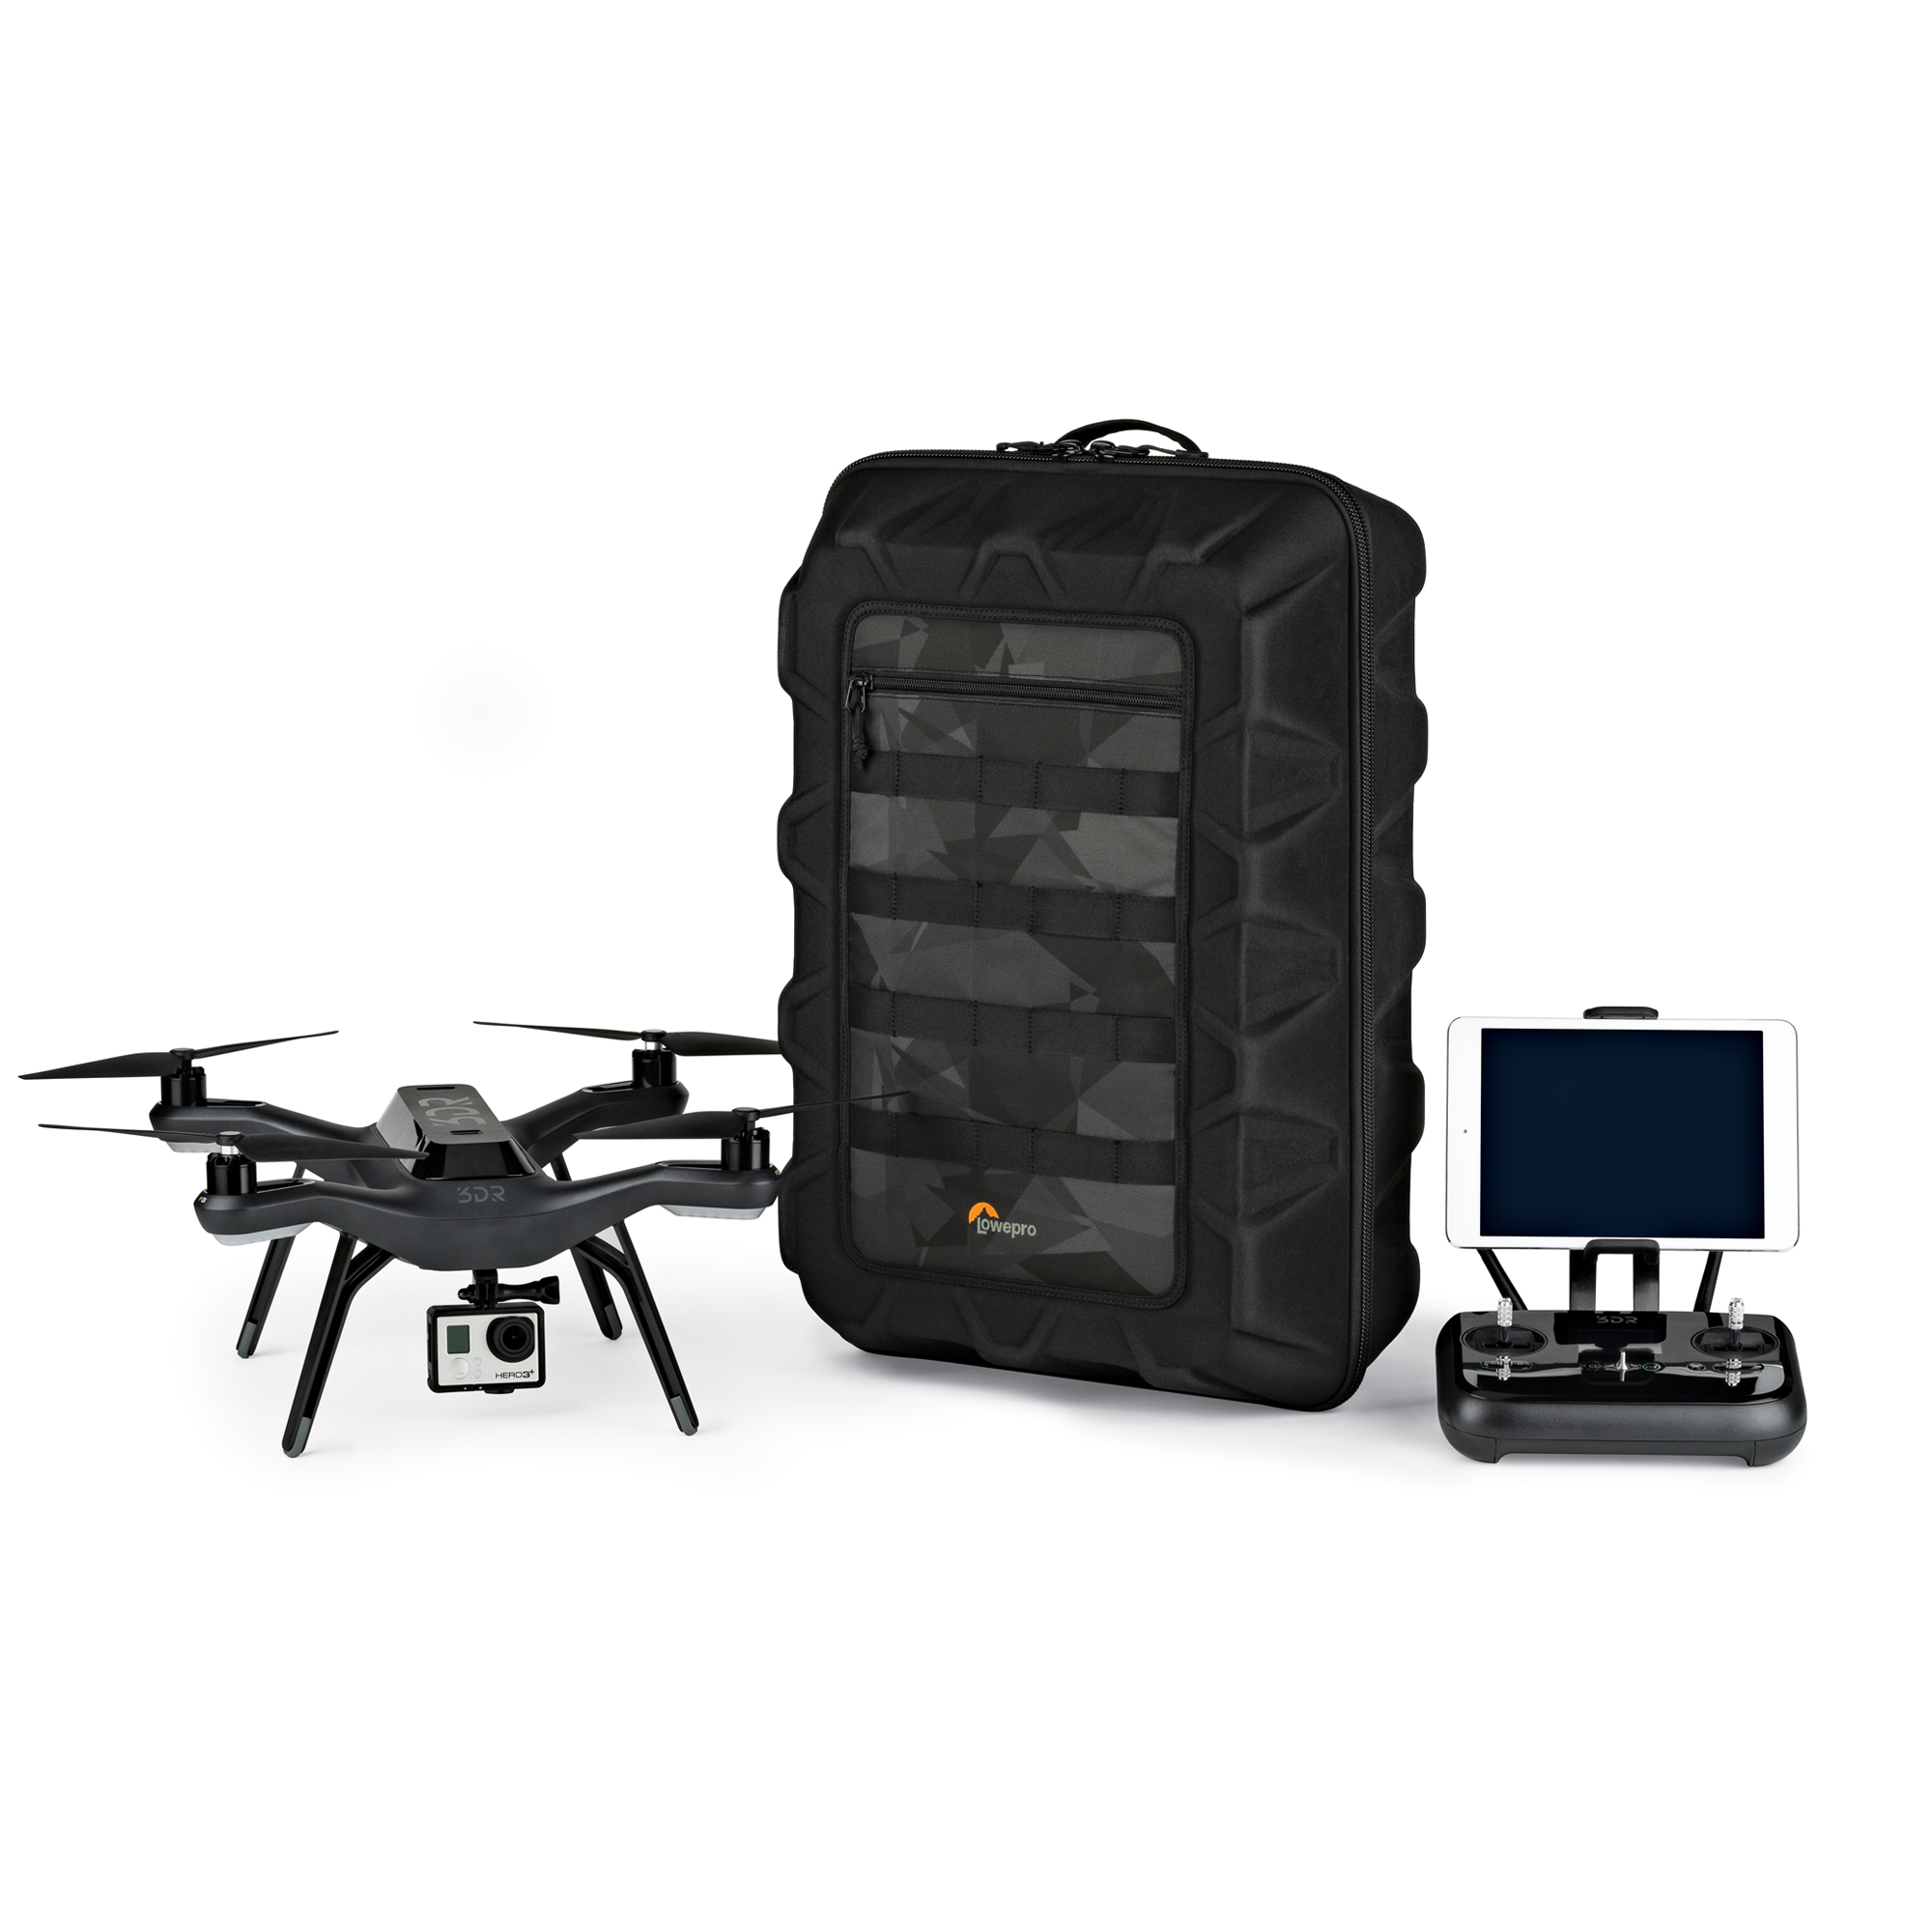 LowePro DroneGuard packs to carry your drone